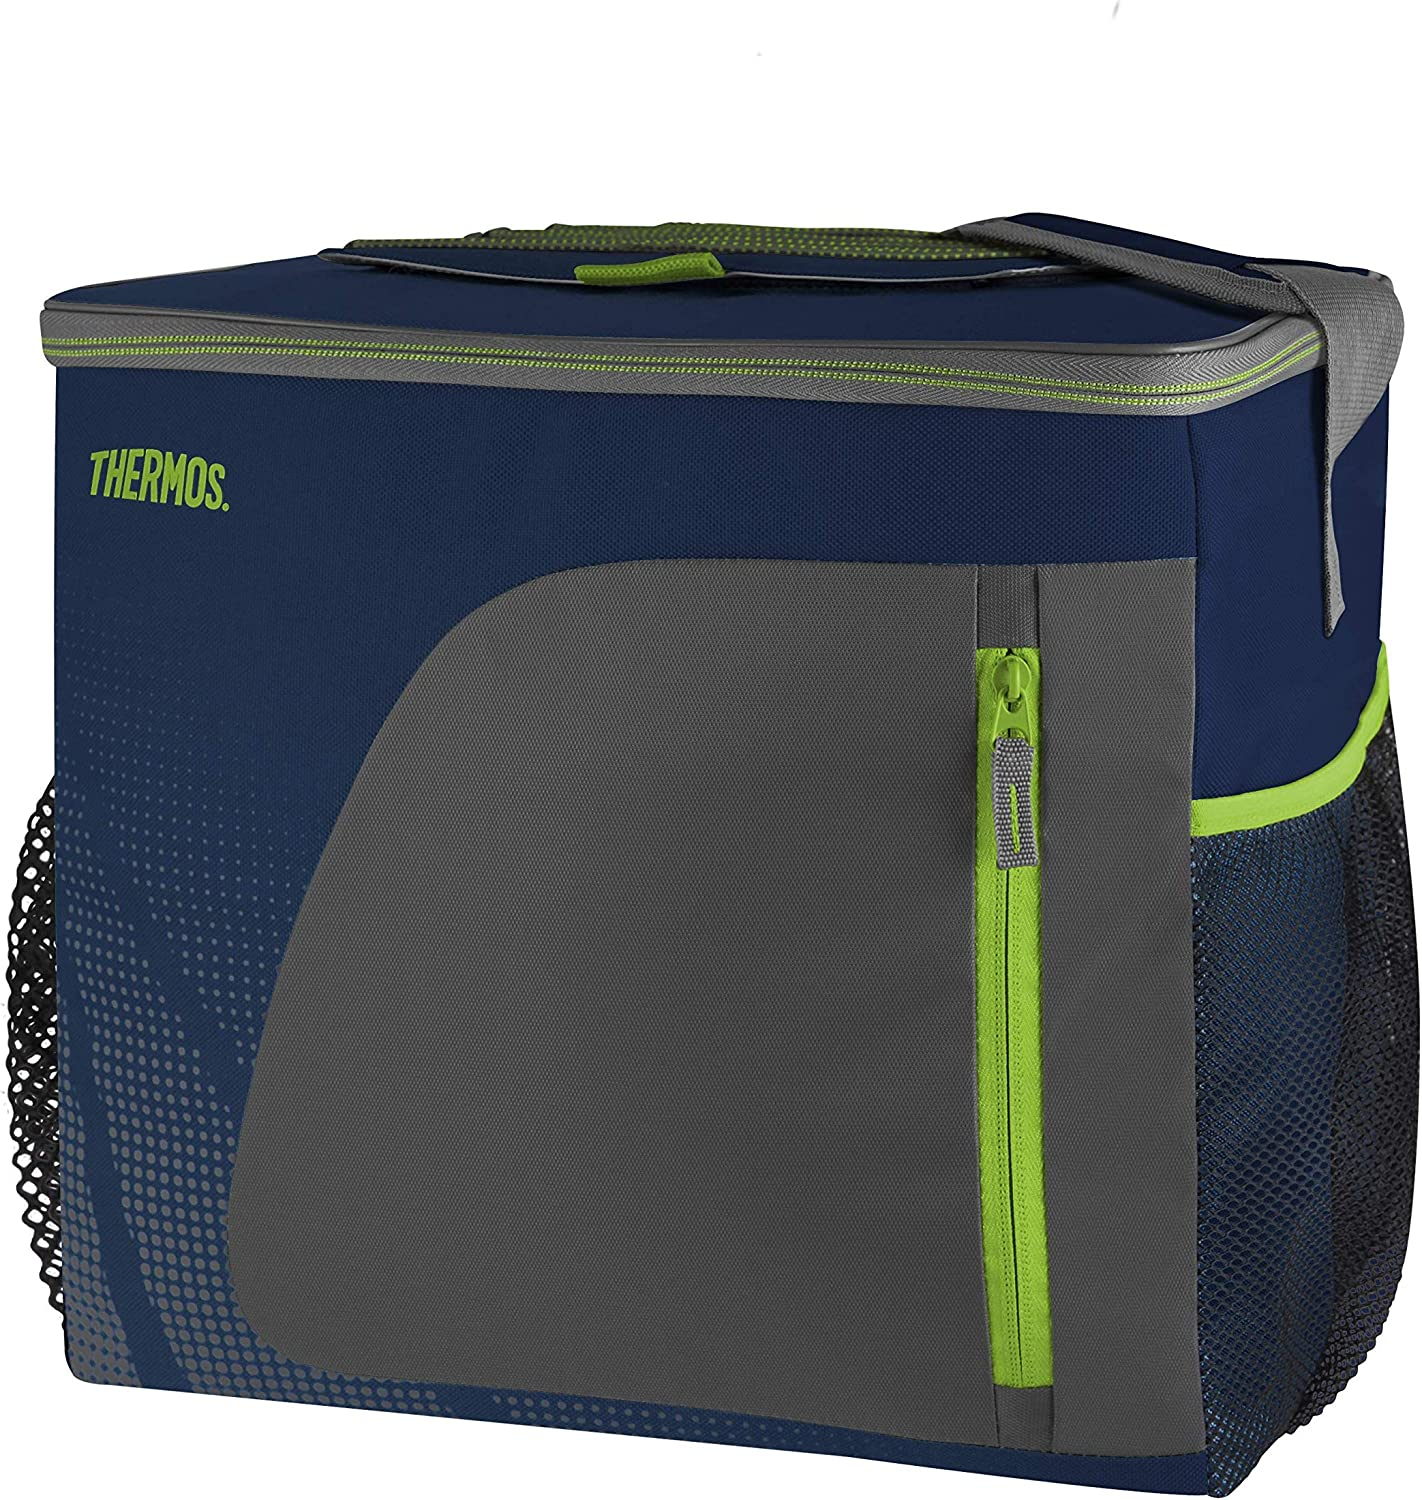 Thermos Radiance Cooler 6 Can//3.5 L bleu marine